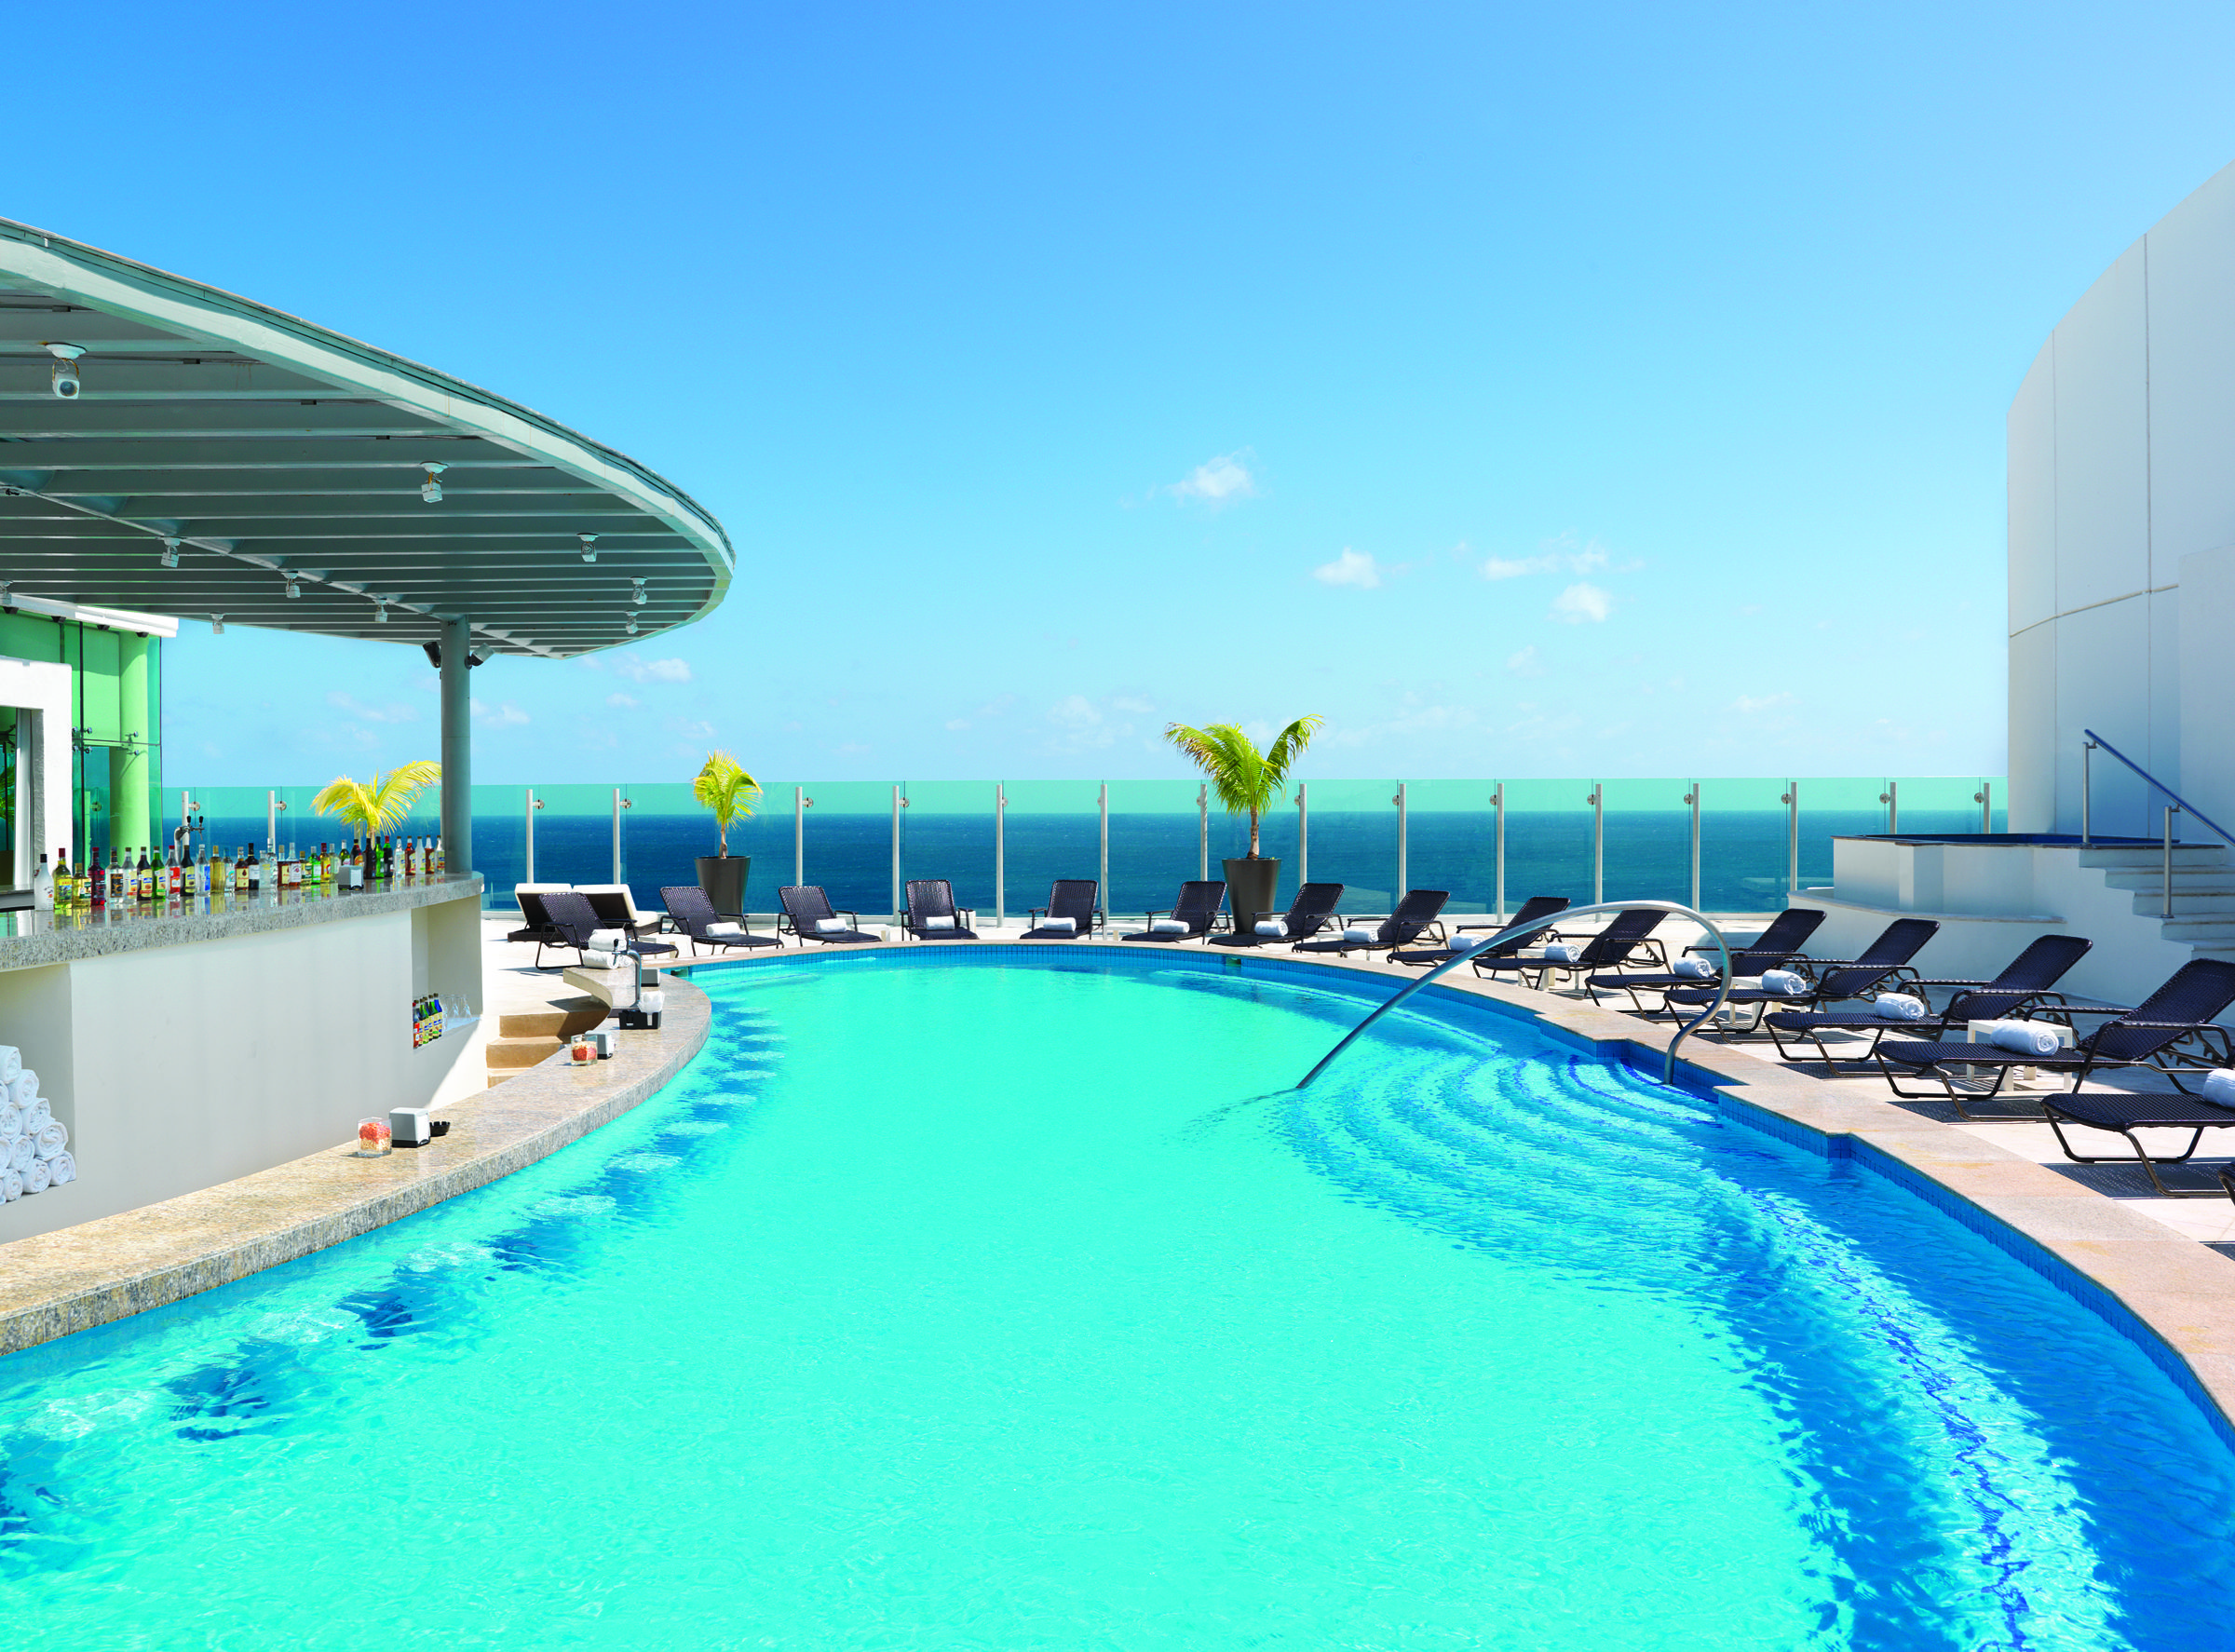 Sky Pool at Beach Palace in Cancun, Mexico.